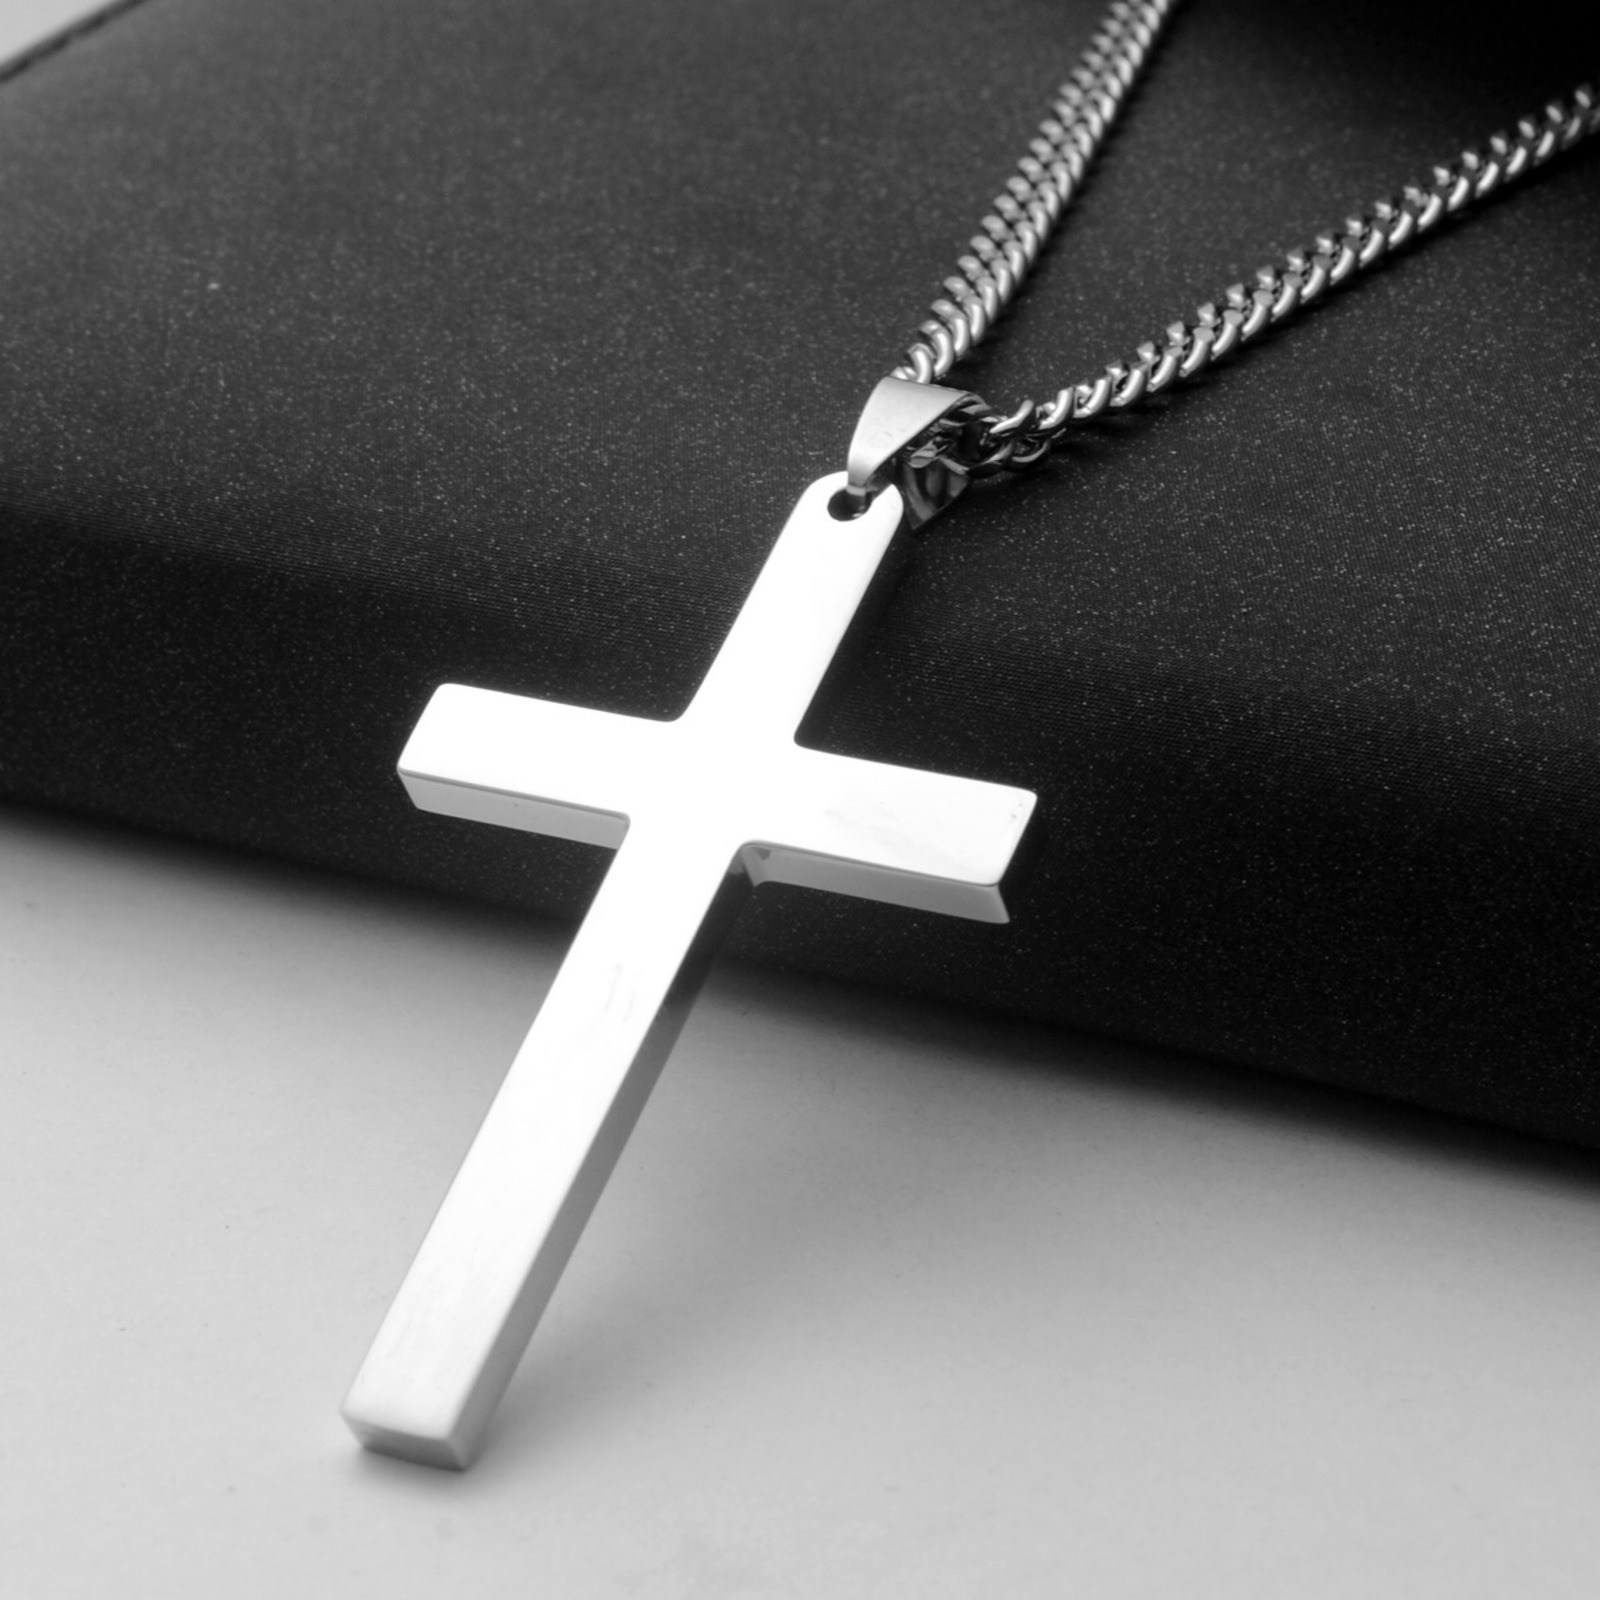 RUN Stainless Steel Rose Flower Cross Pendant Necklace Retro Jesus Crucifix Chain Necklace Pack of 1